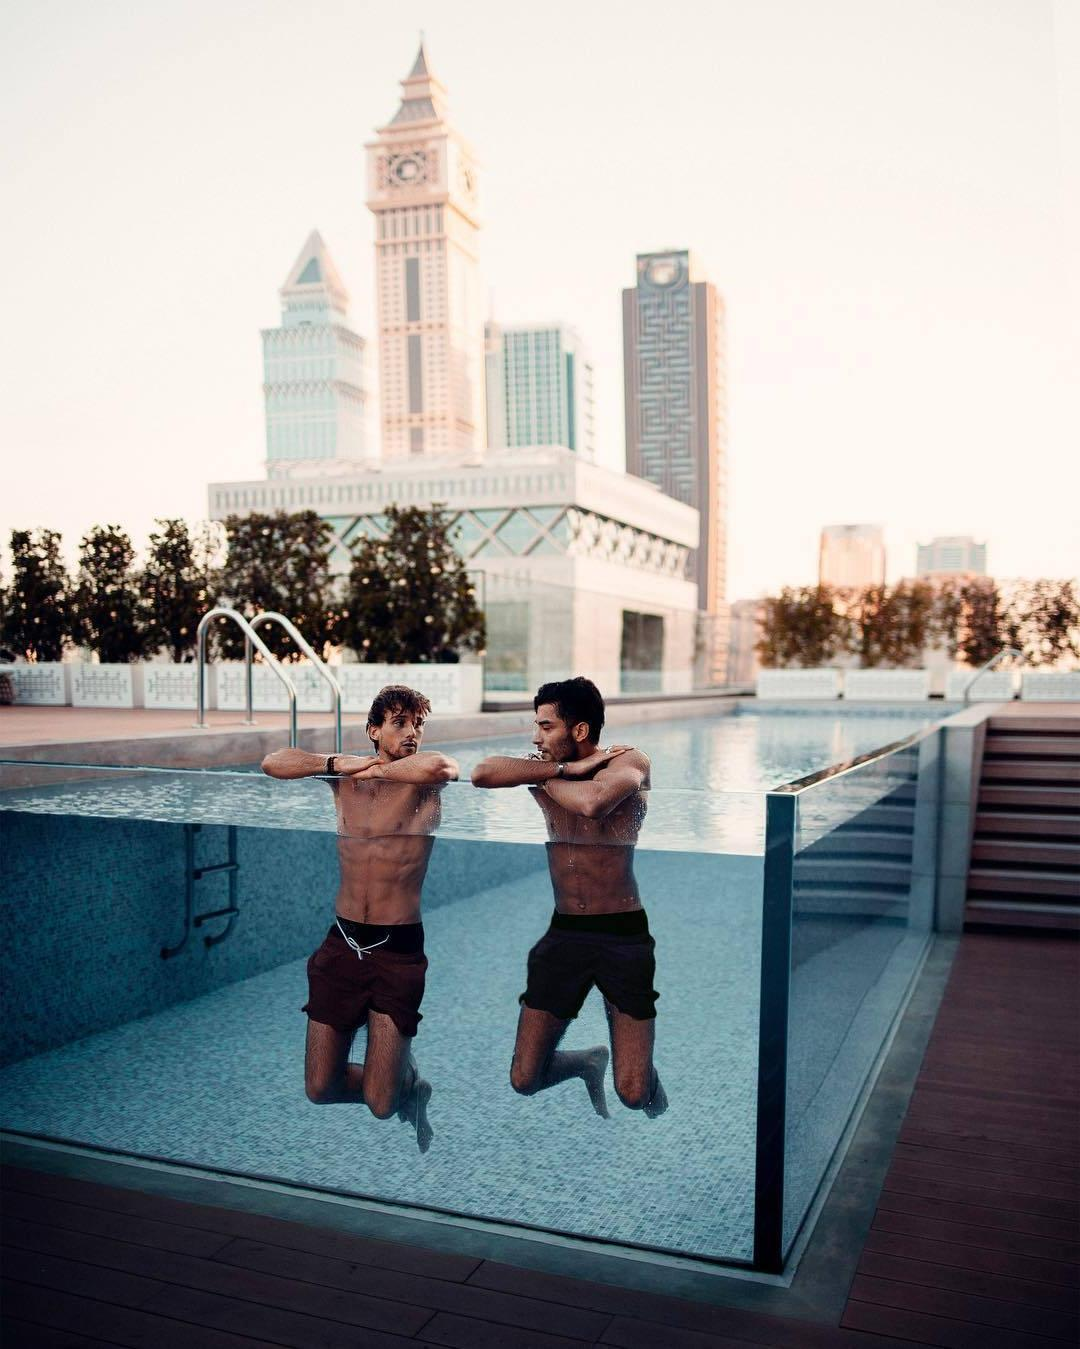 two-buddies-abs-fit-shirtless-dudes-luxurious-pool-impressive-city-view